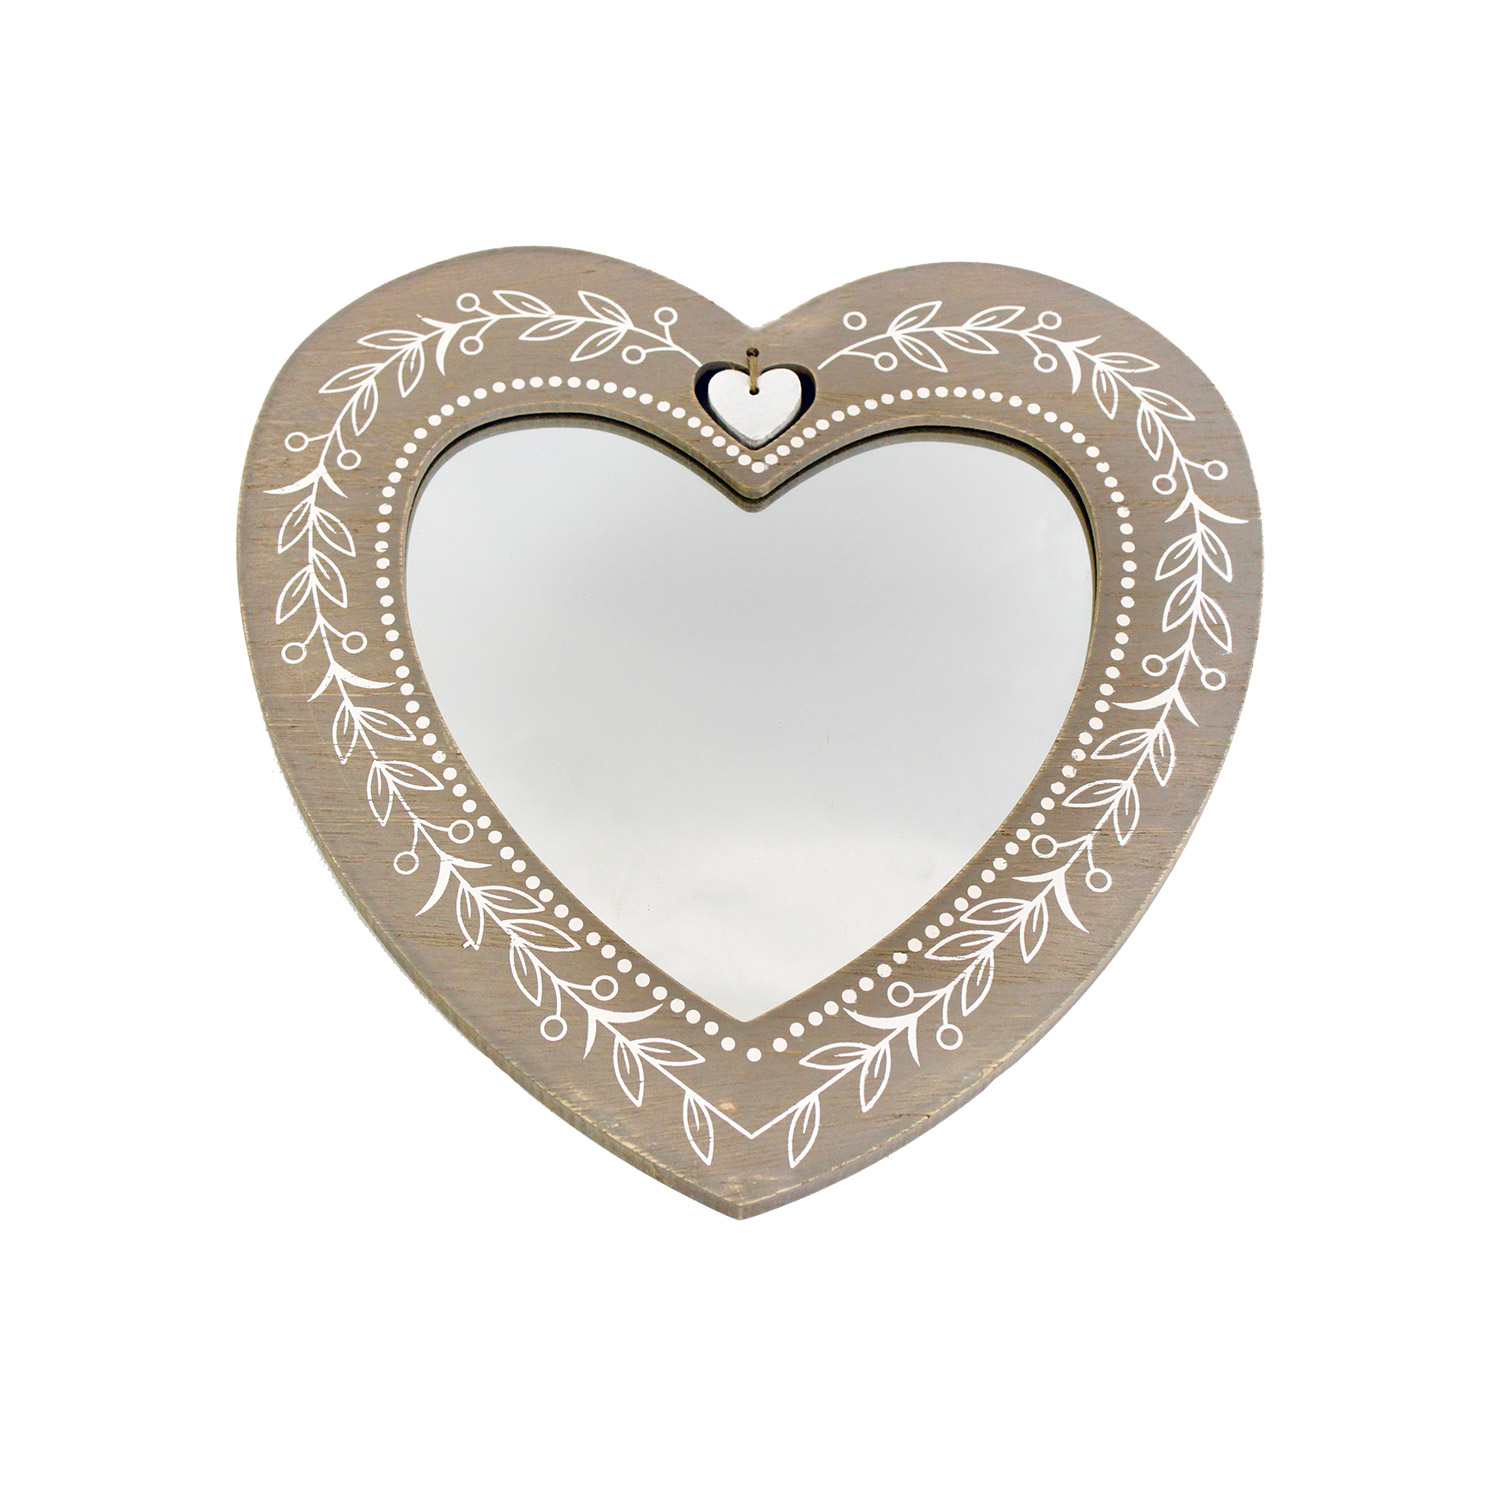 Wooden Heart Shaped Mirror With Hand Painted White Leaves